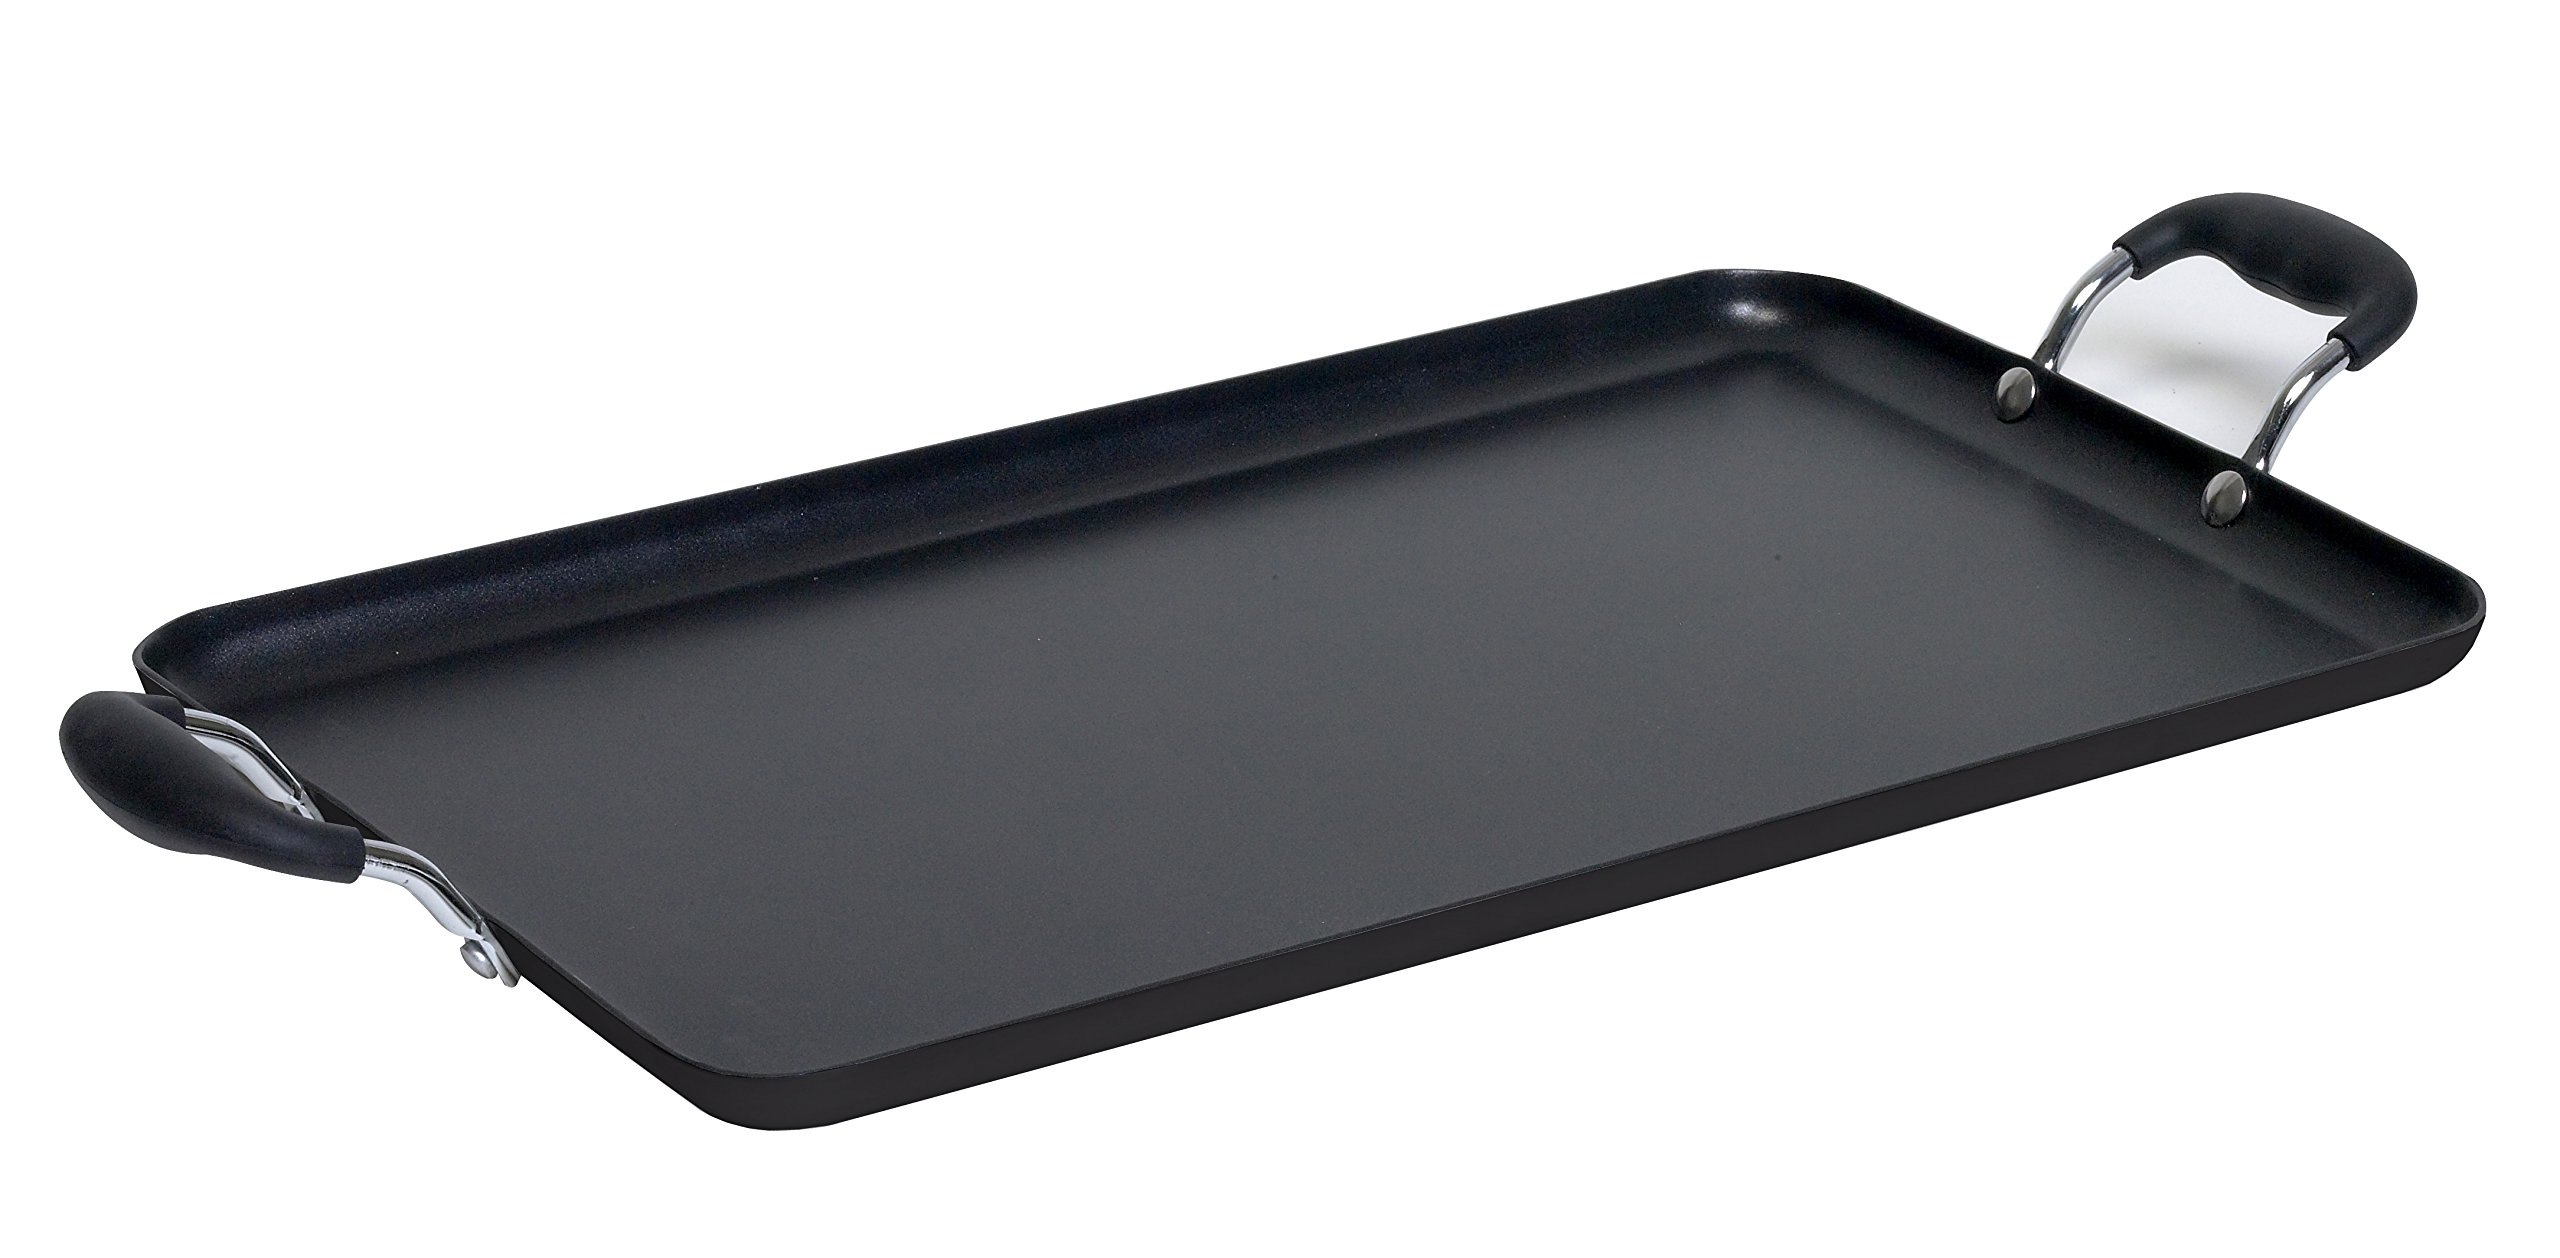 IMUSA USA IMU-1818 Soft Touch Double Burner/Griddle, Black